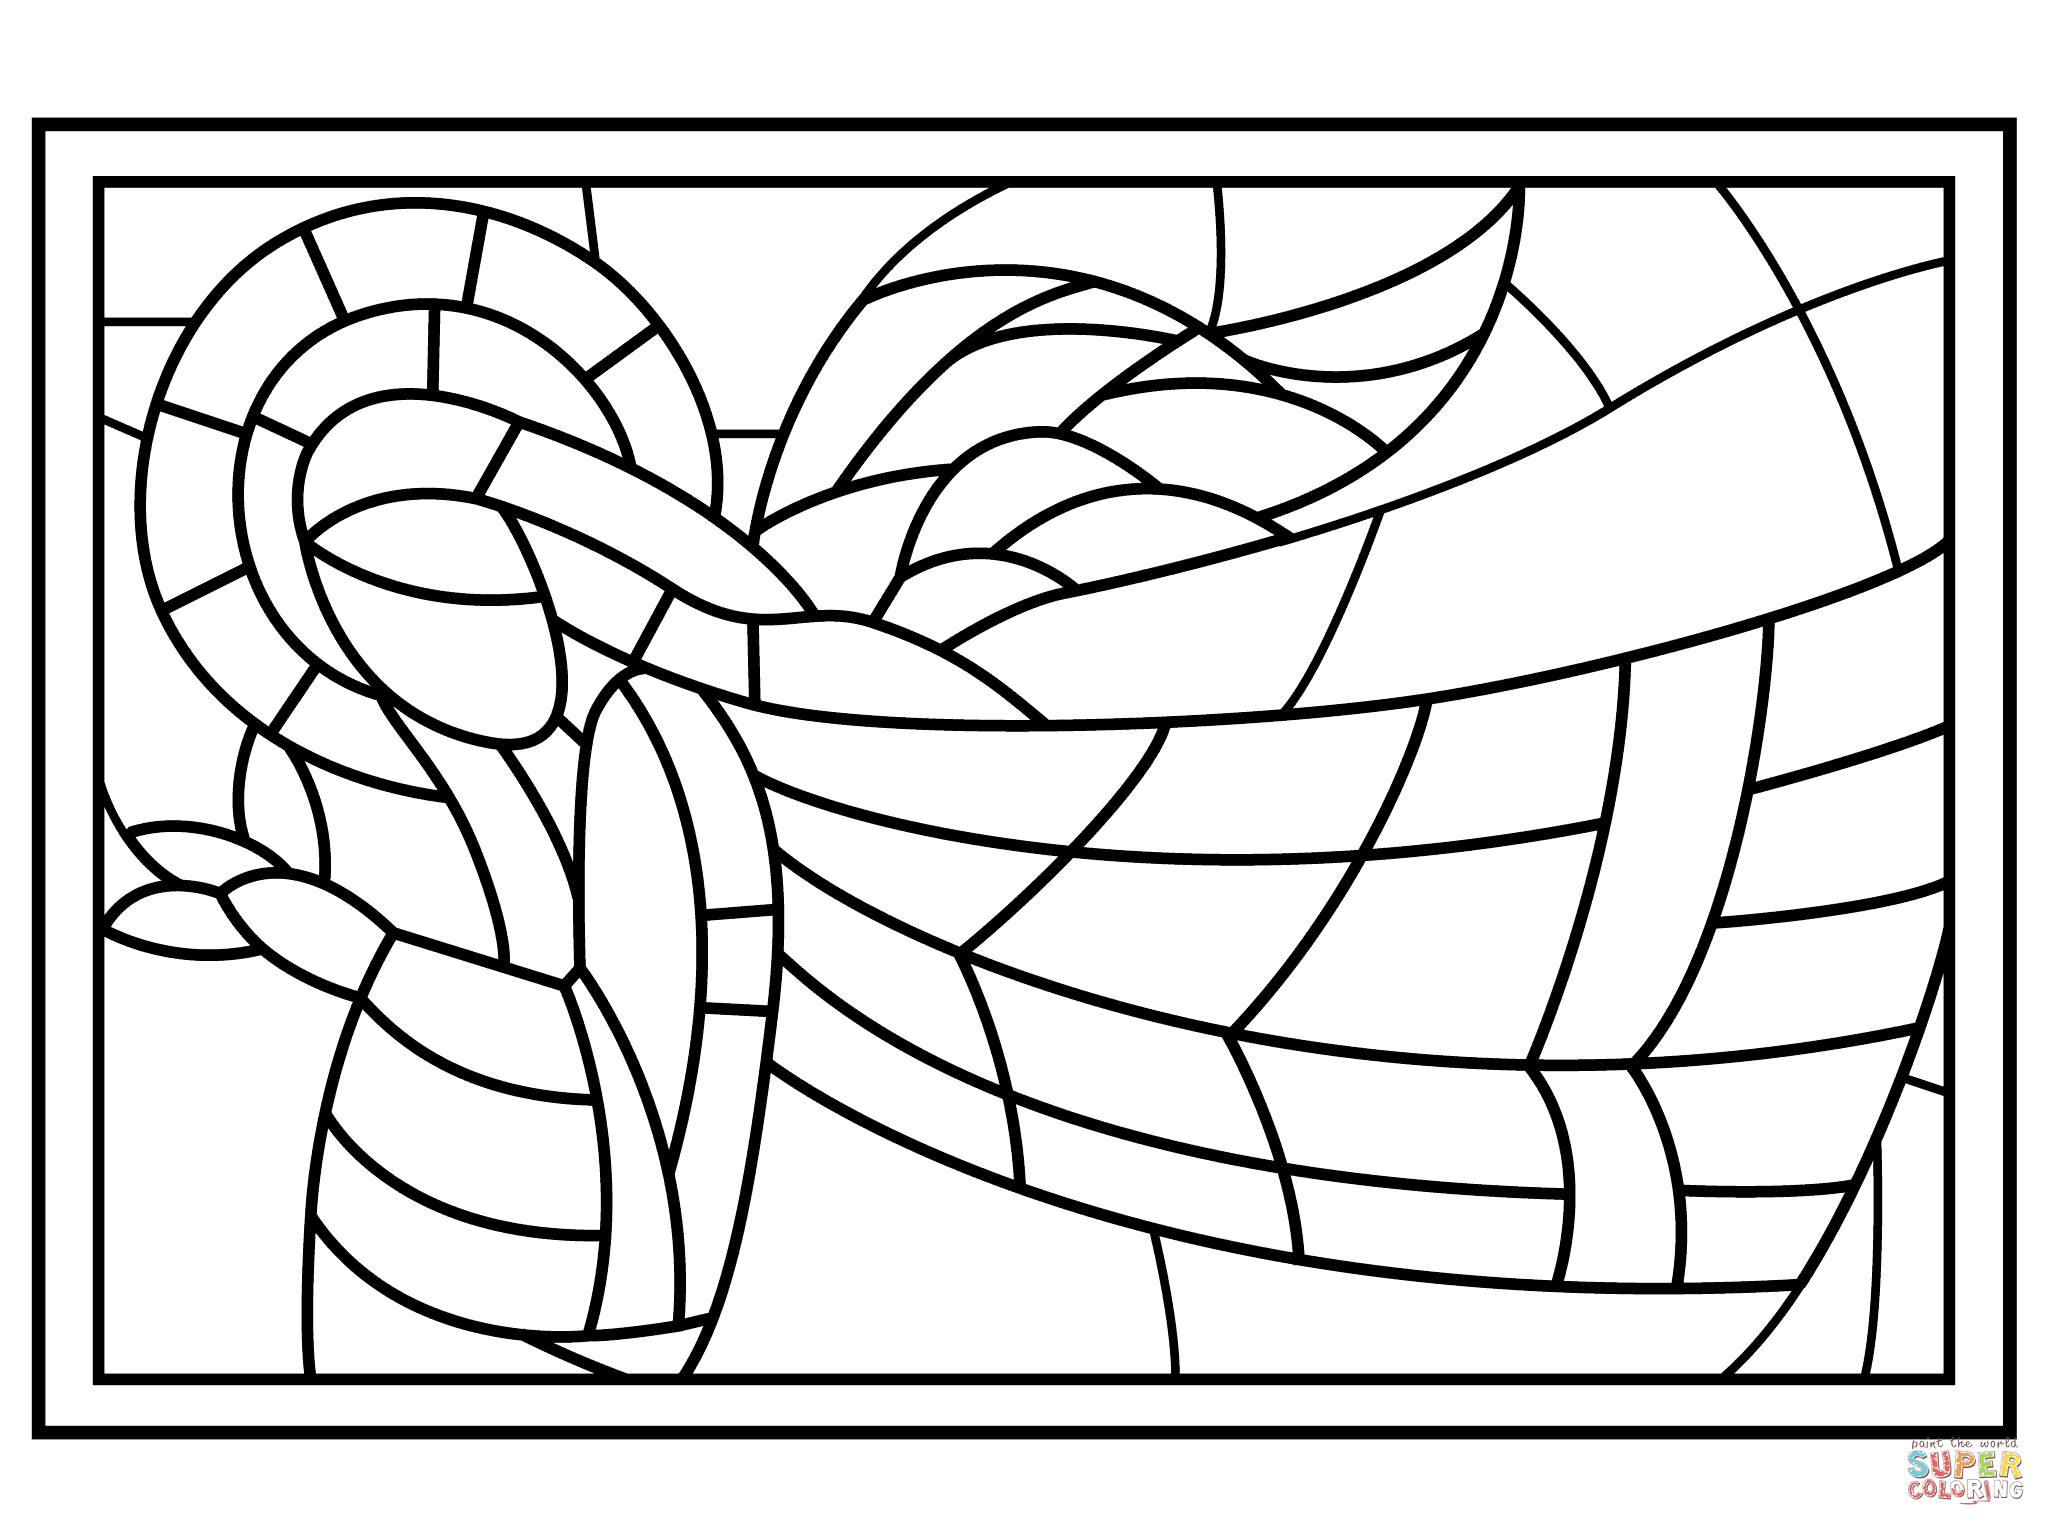 The Ascension Stained Glass Coloring Page Free Printable Angel Coloring Pages Christmas Coloring Pages Free Coloring Pages